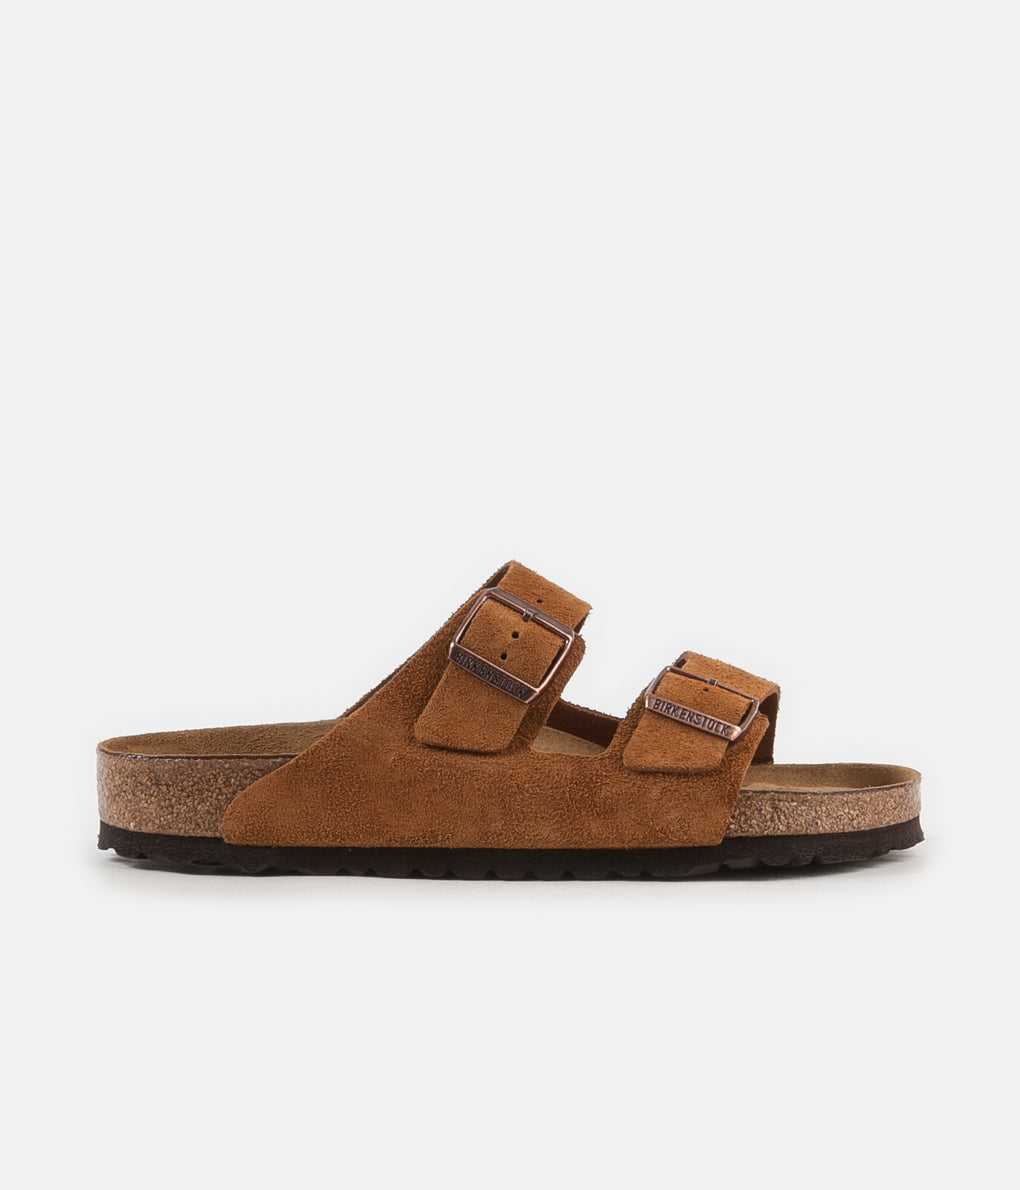 Birkenstock Arizona SFB Sandals - Mink